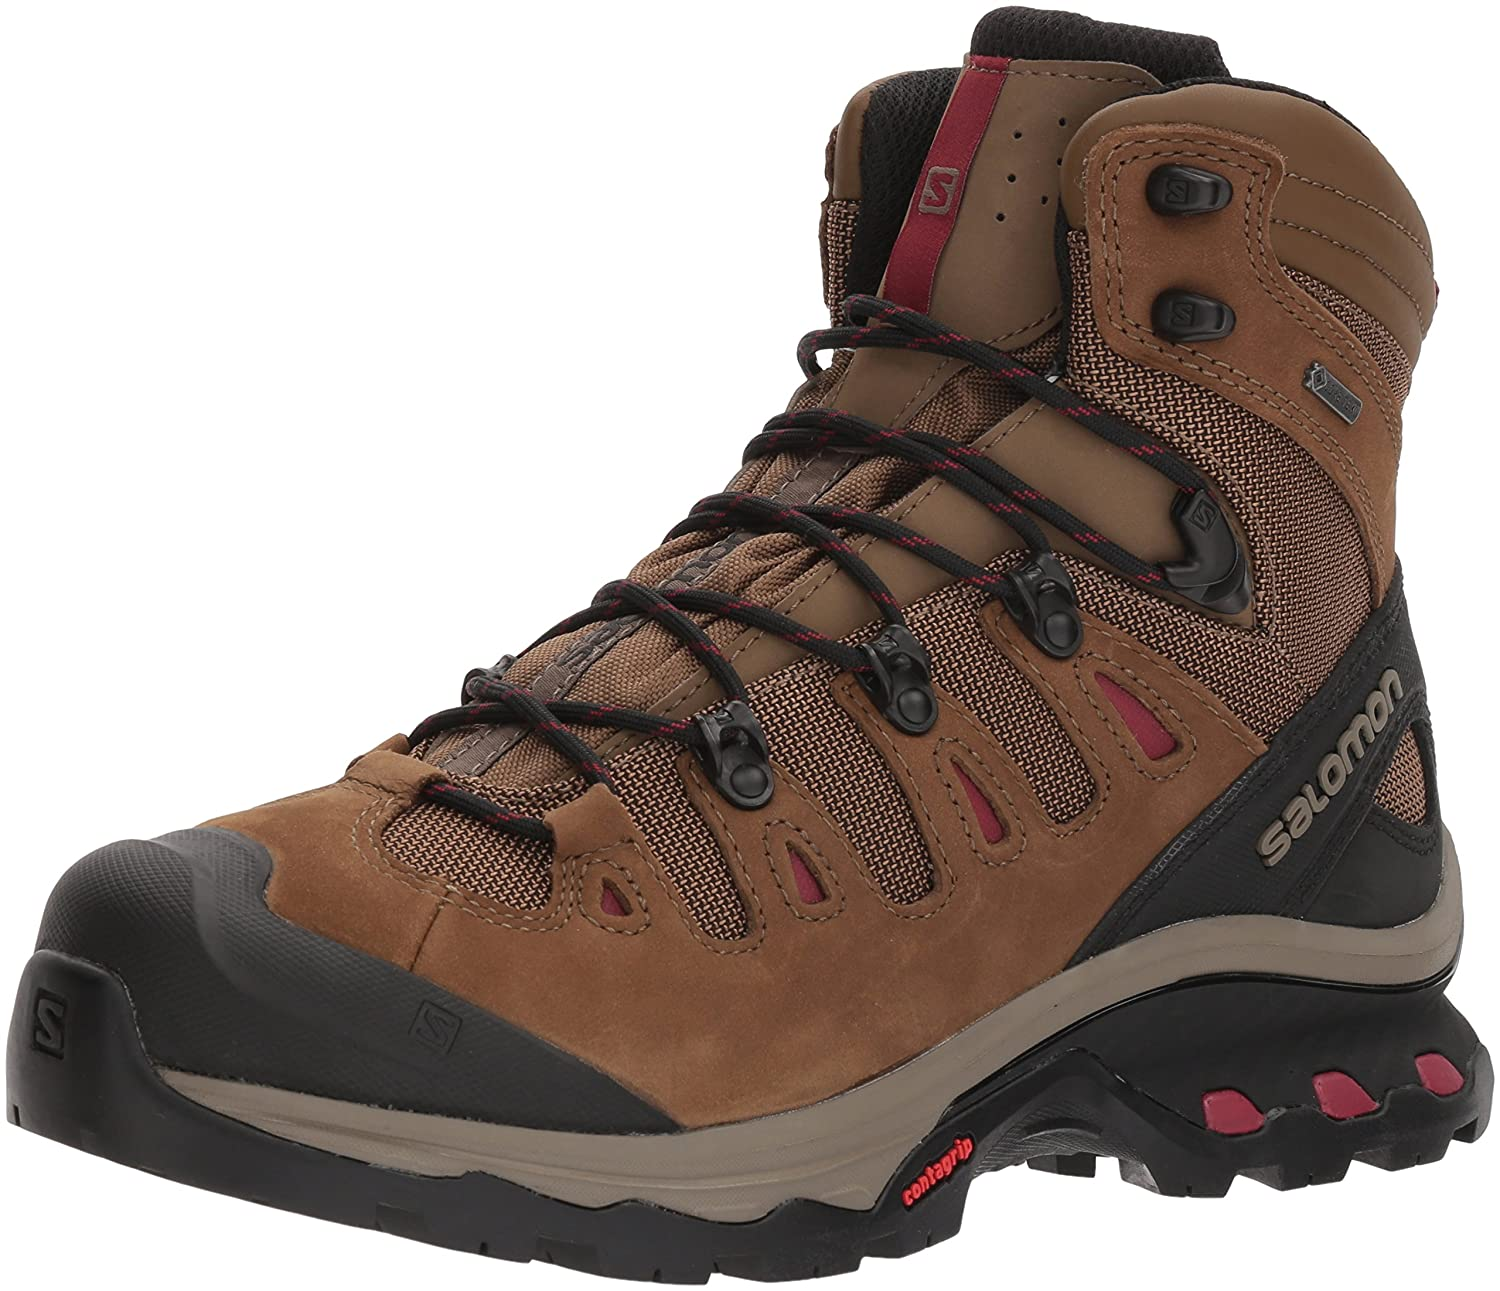 Salomon Women's Quest 4d 3 GTX W Backpacking Boots B07885MX3P 8.5 M US|Teak